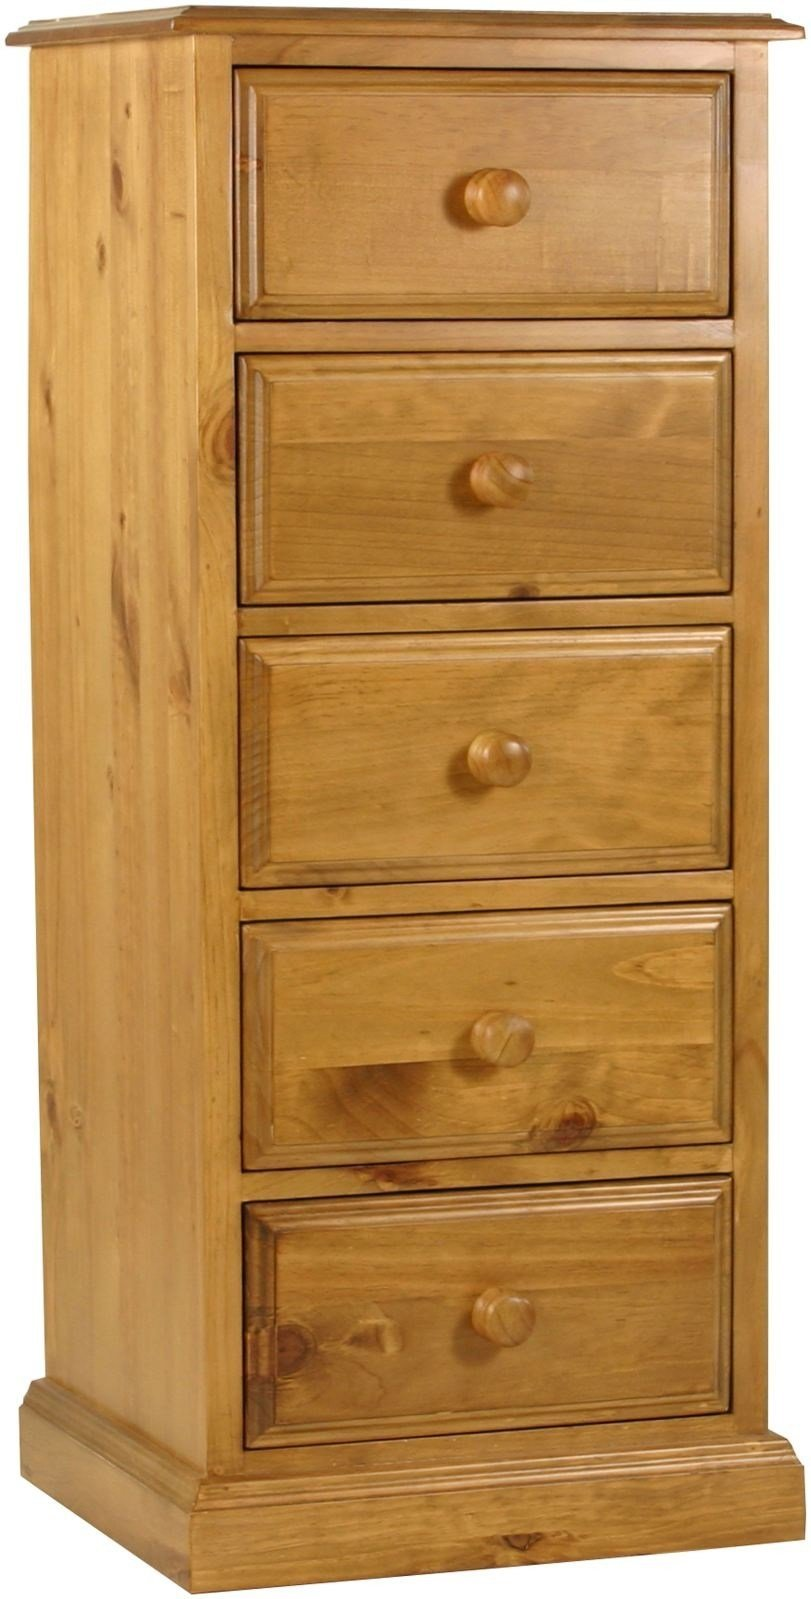 Best Primrose Solid Chunky Pine Bedroom Furniture Tallboy Chest Of Drawers Ebay With Pictures